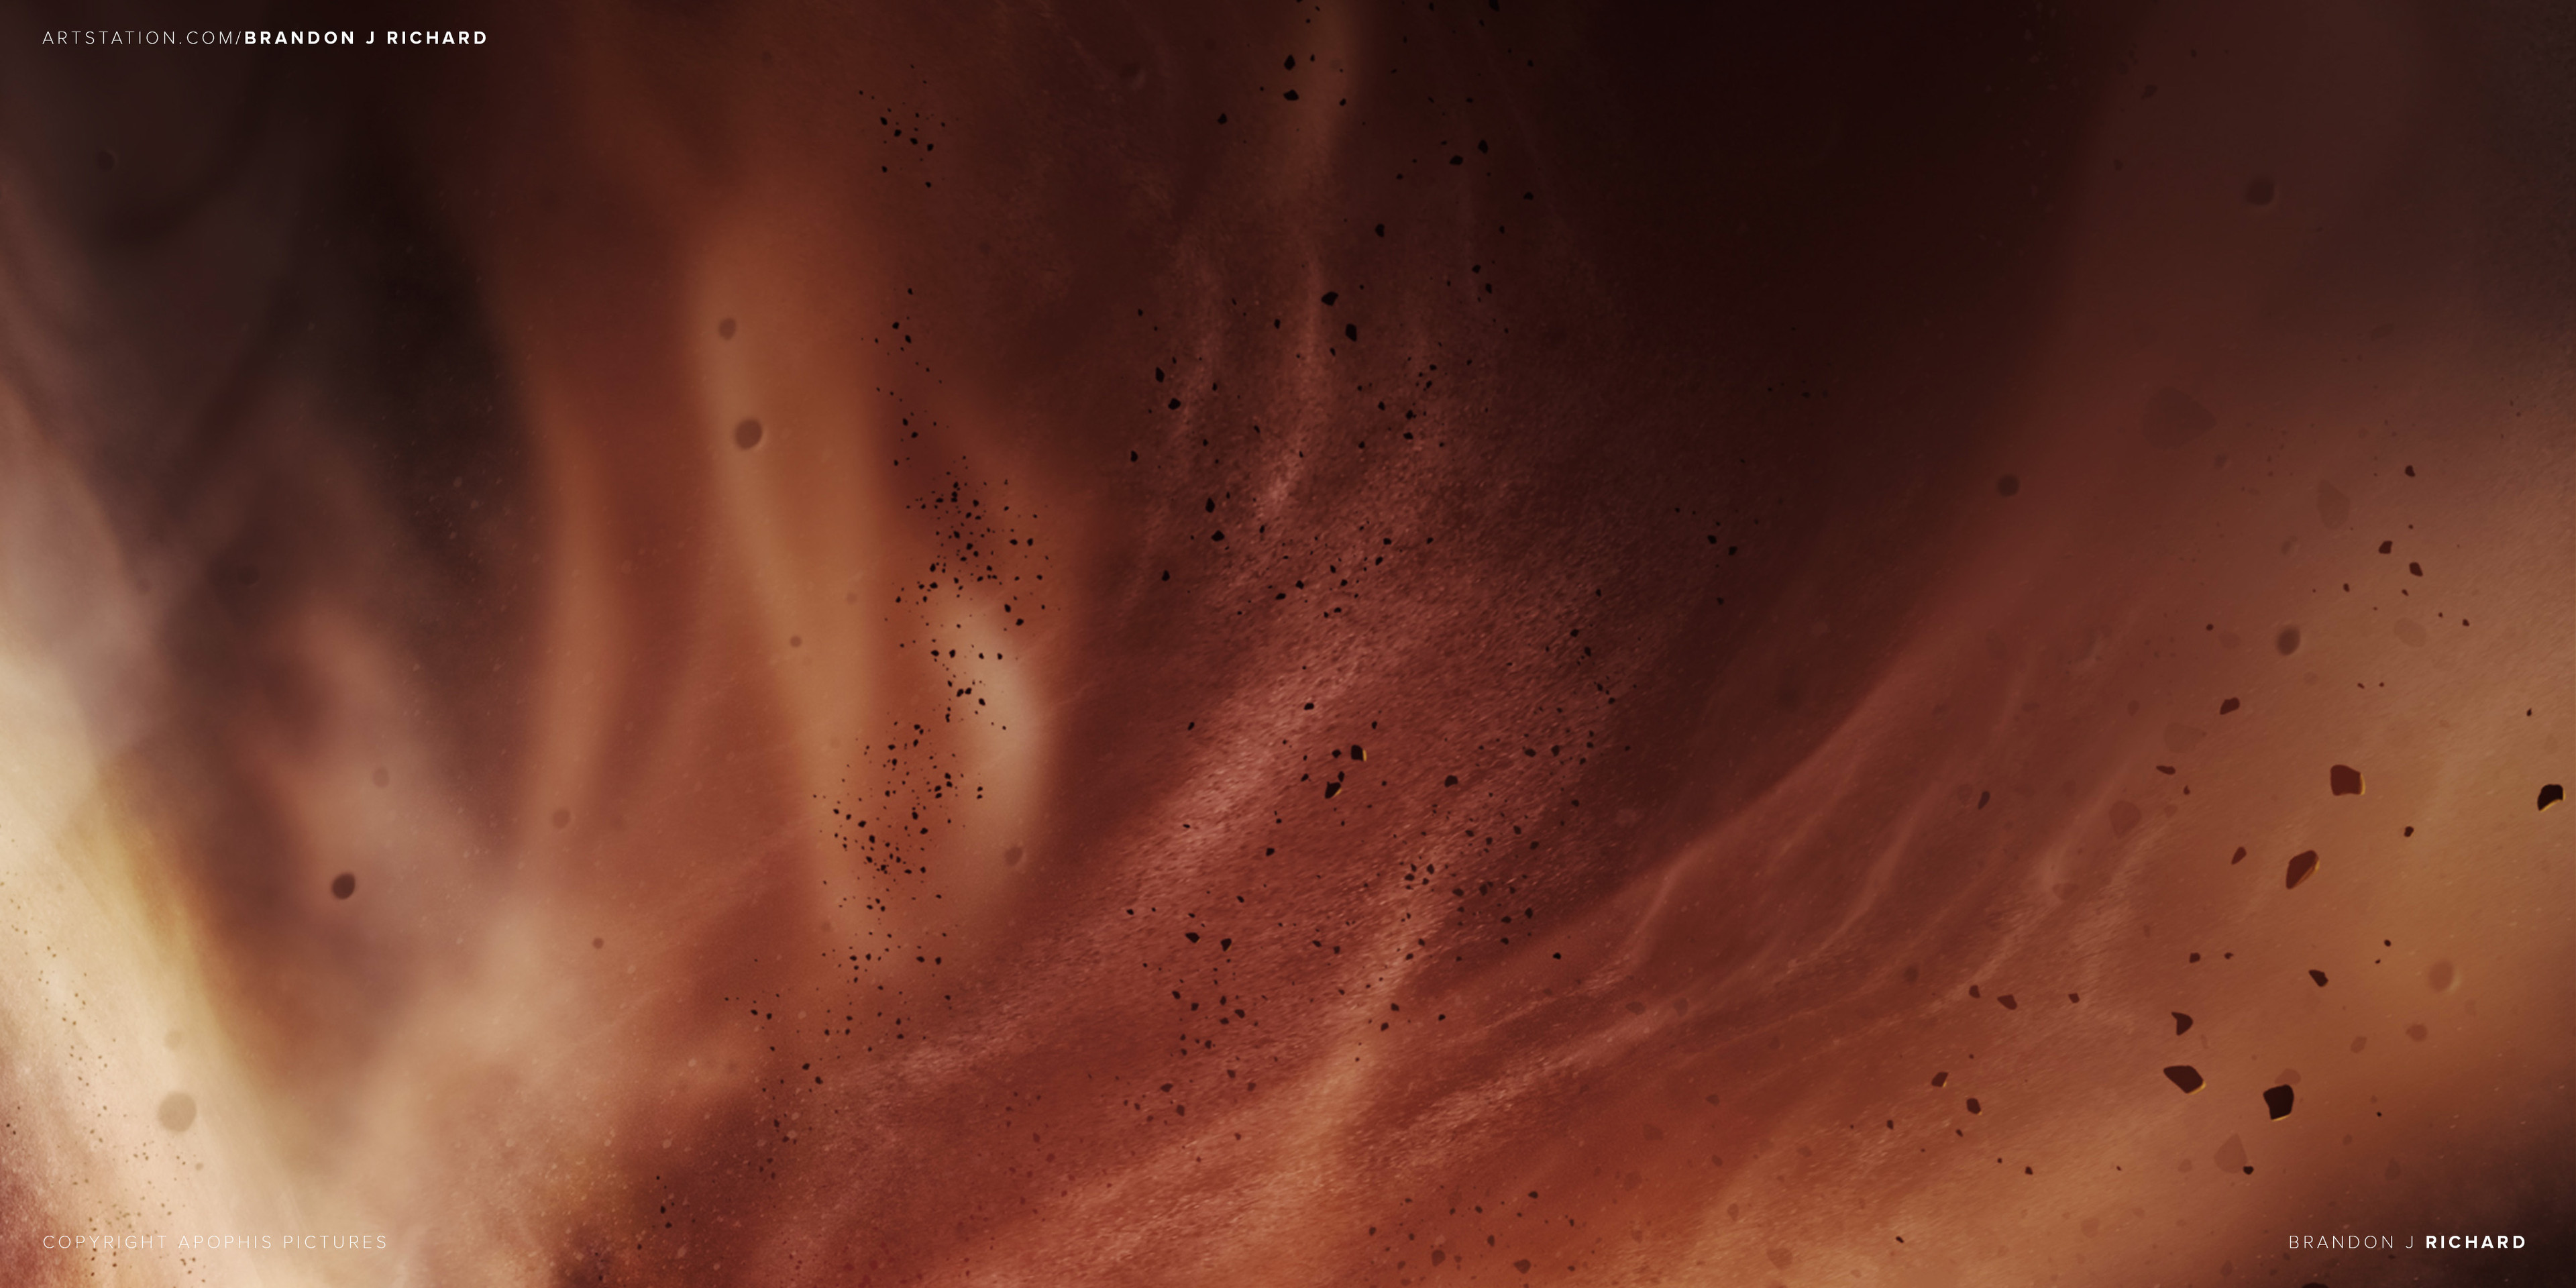 Detail - a storm of particles and debris